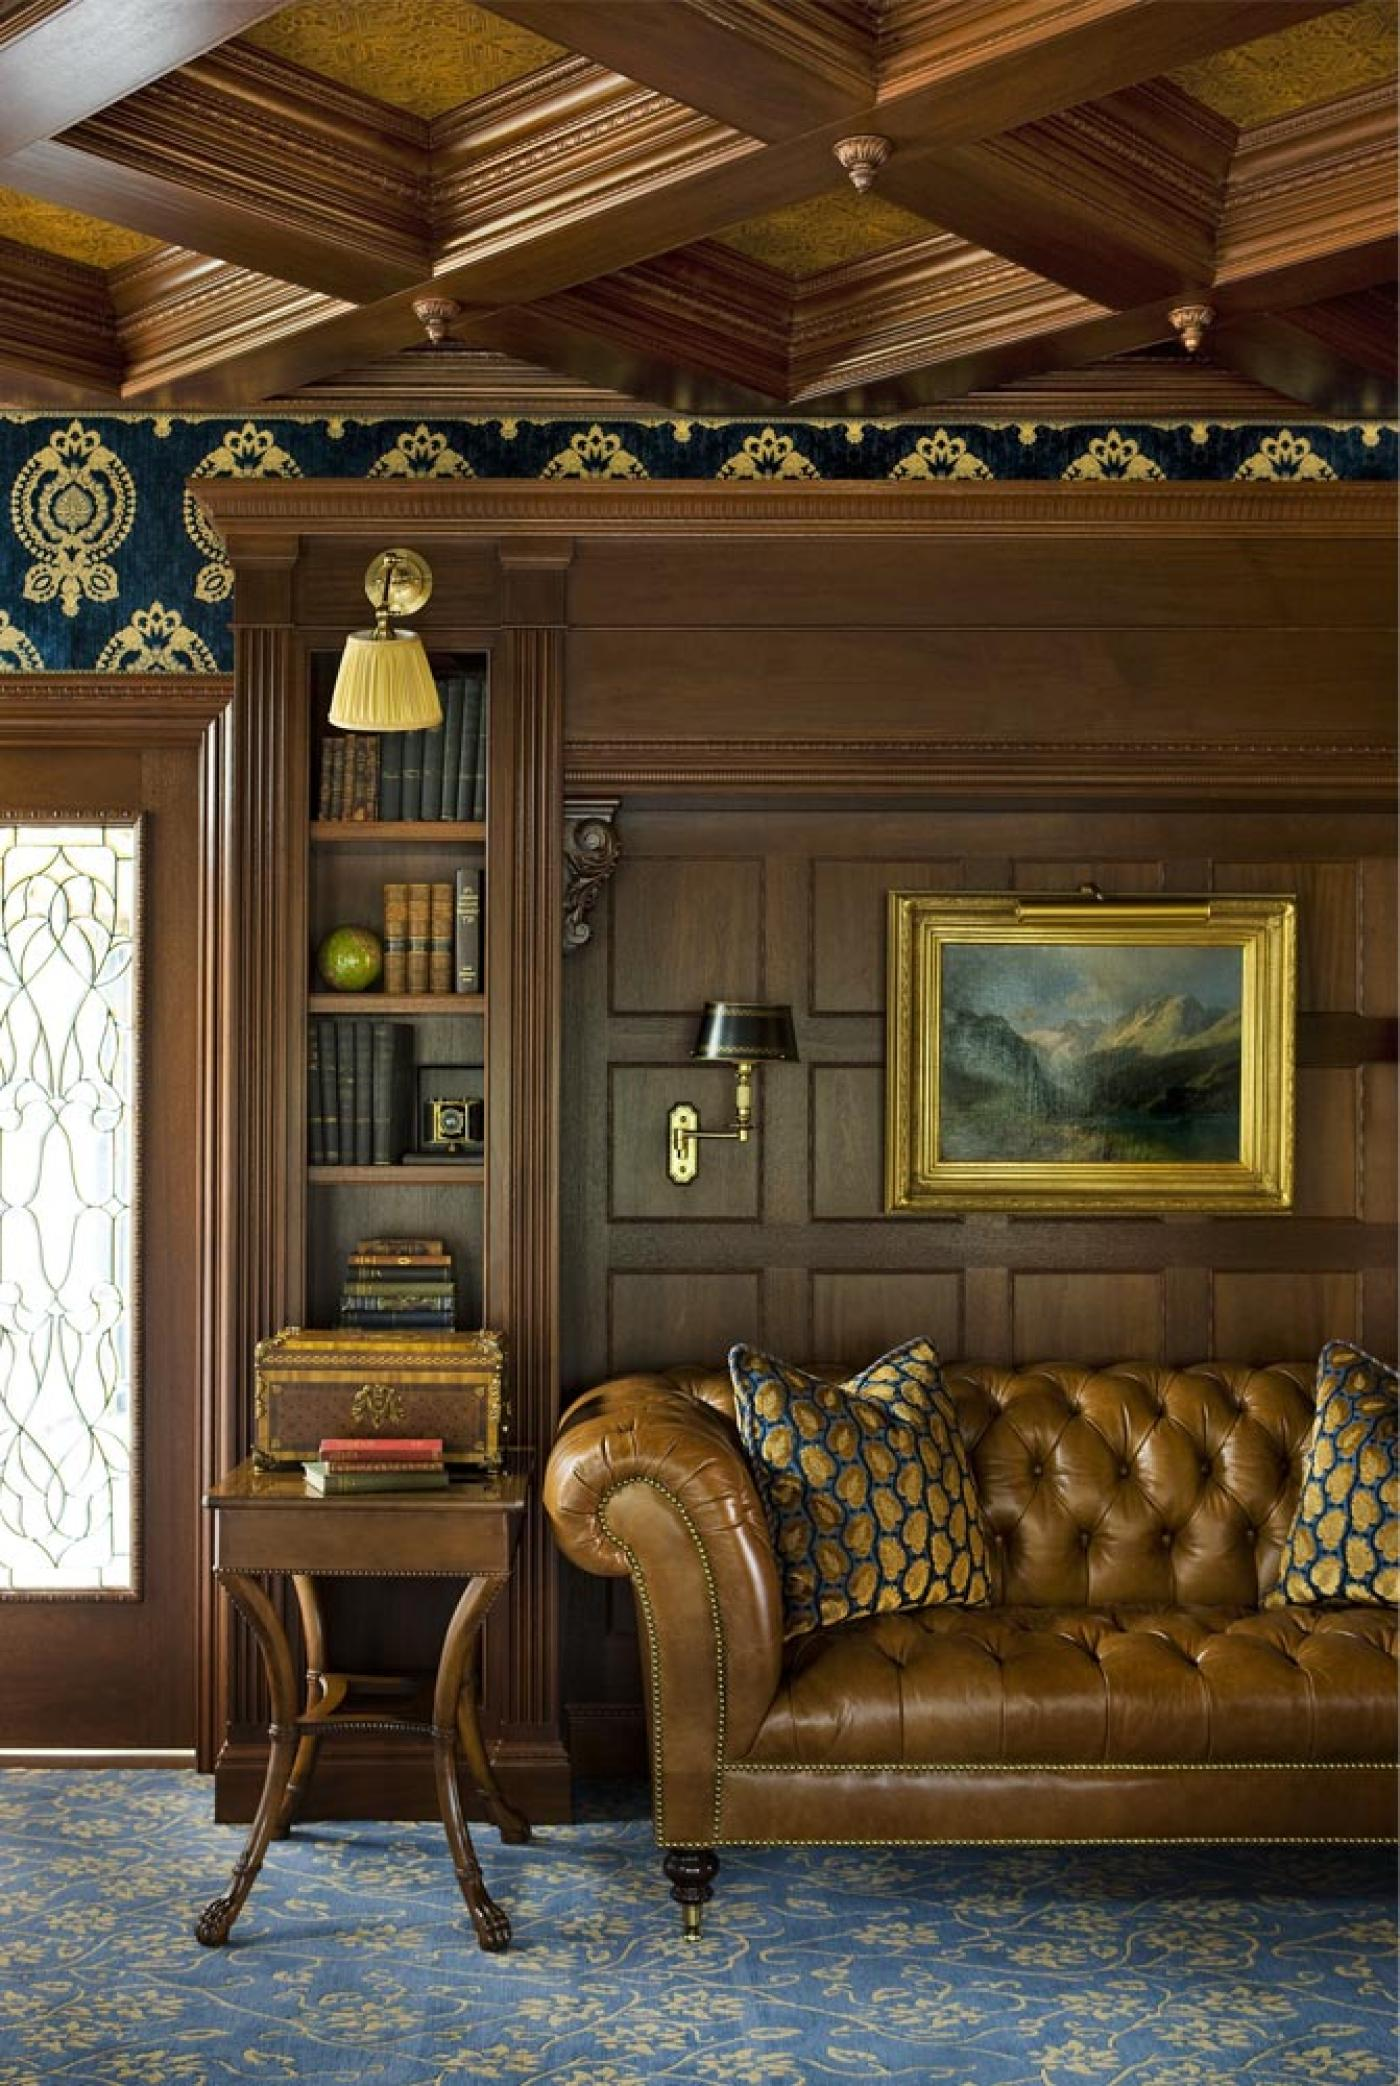 Old world inspiration by eberlein design consultants ltd for Design consultants limited